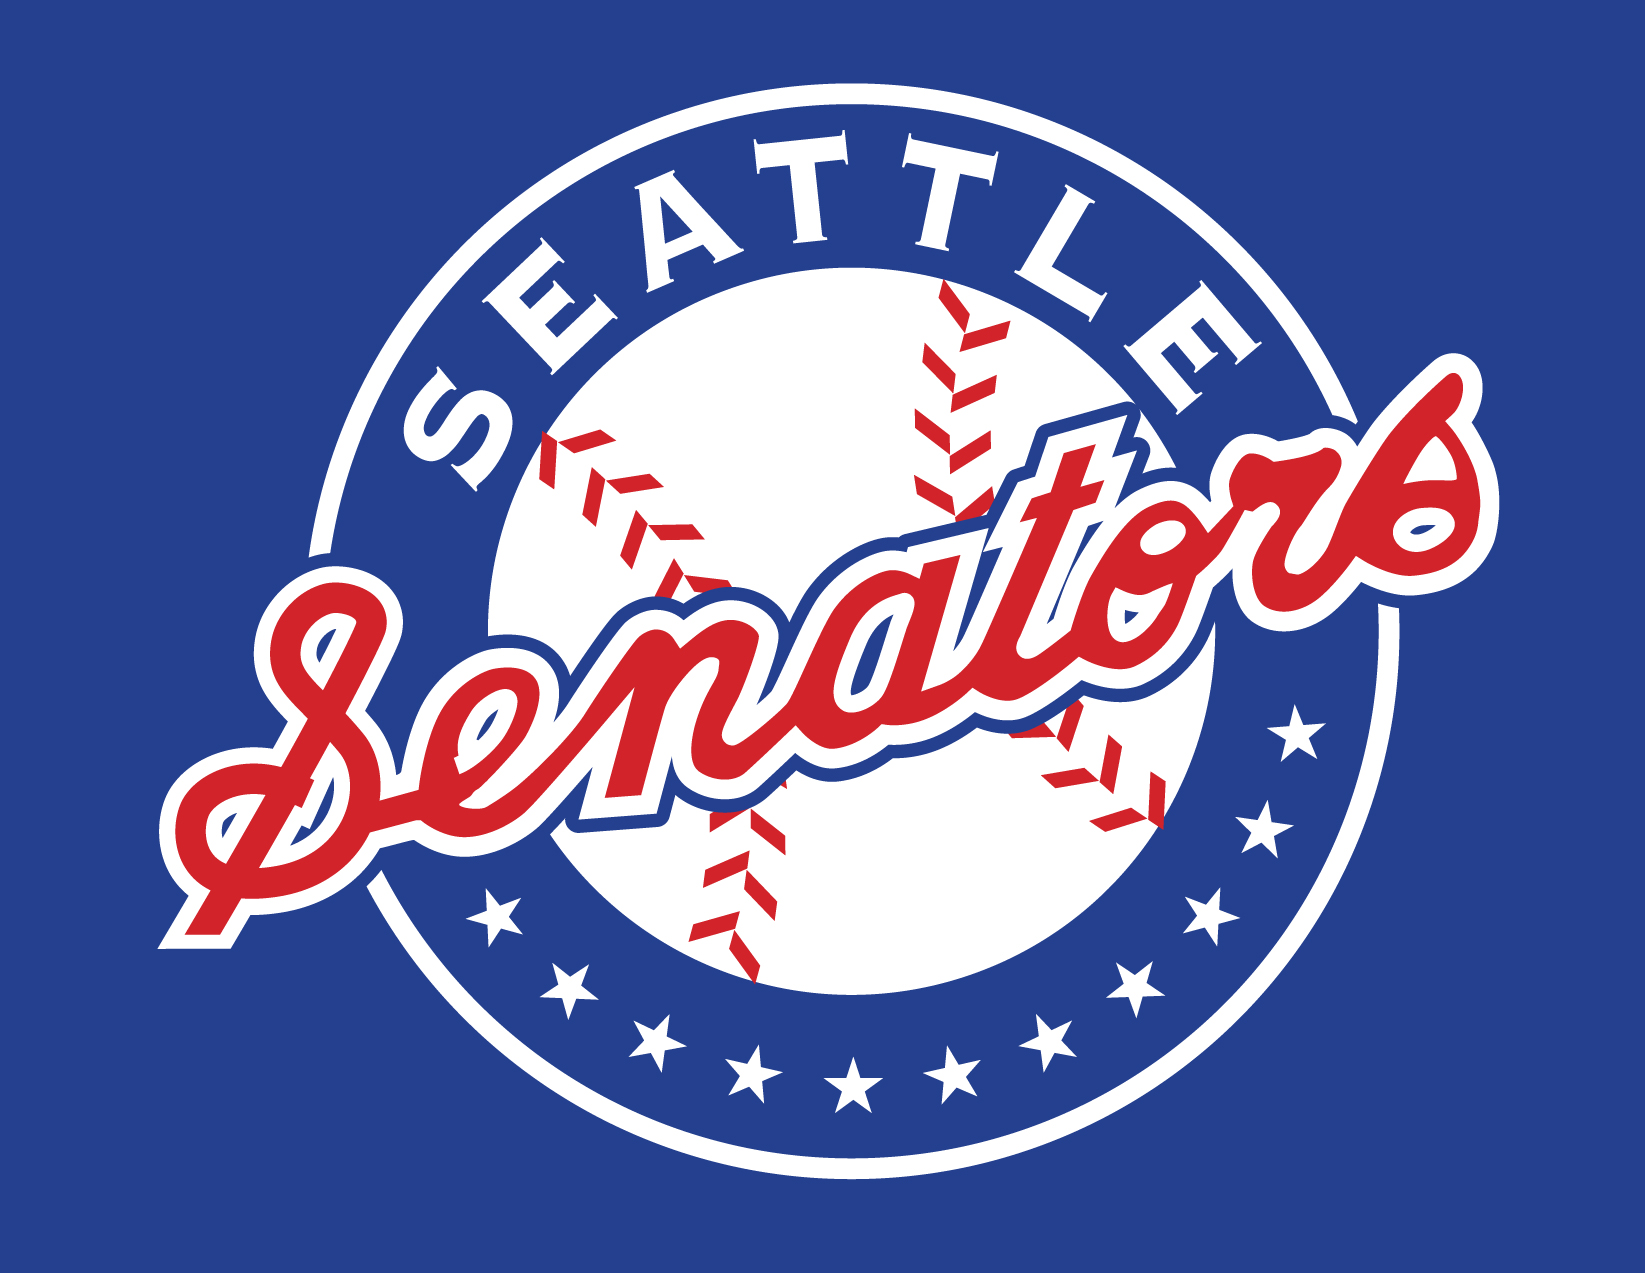 SeattleSenators